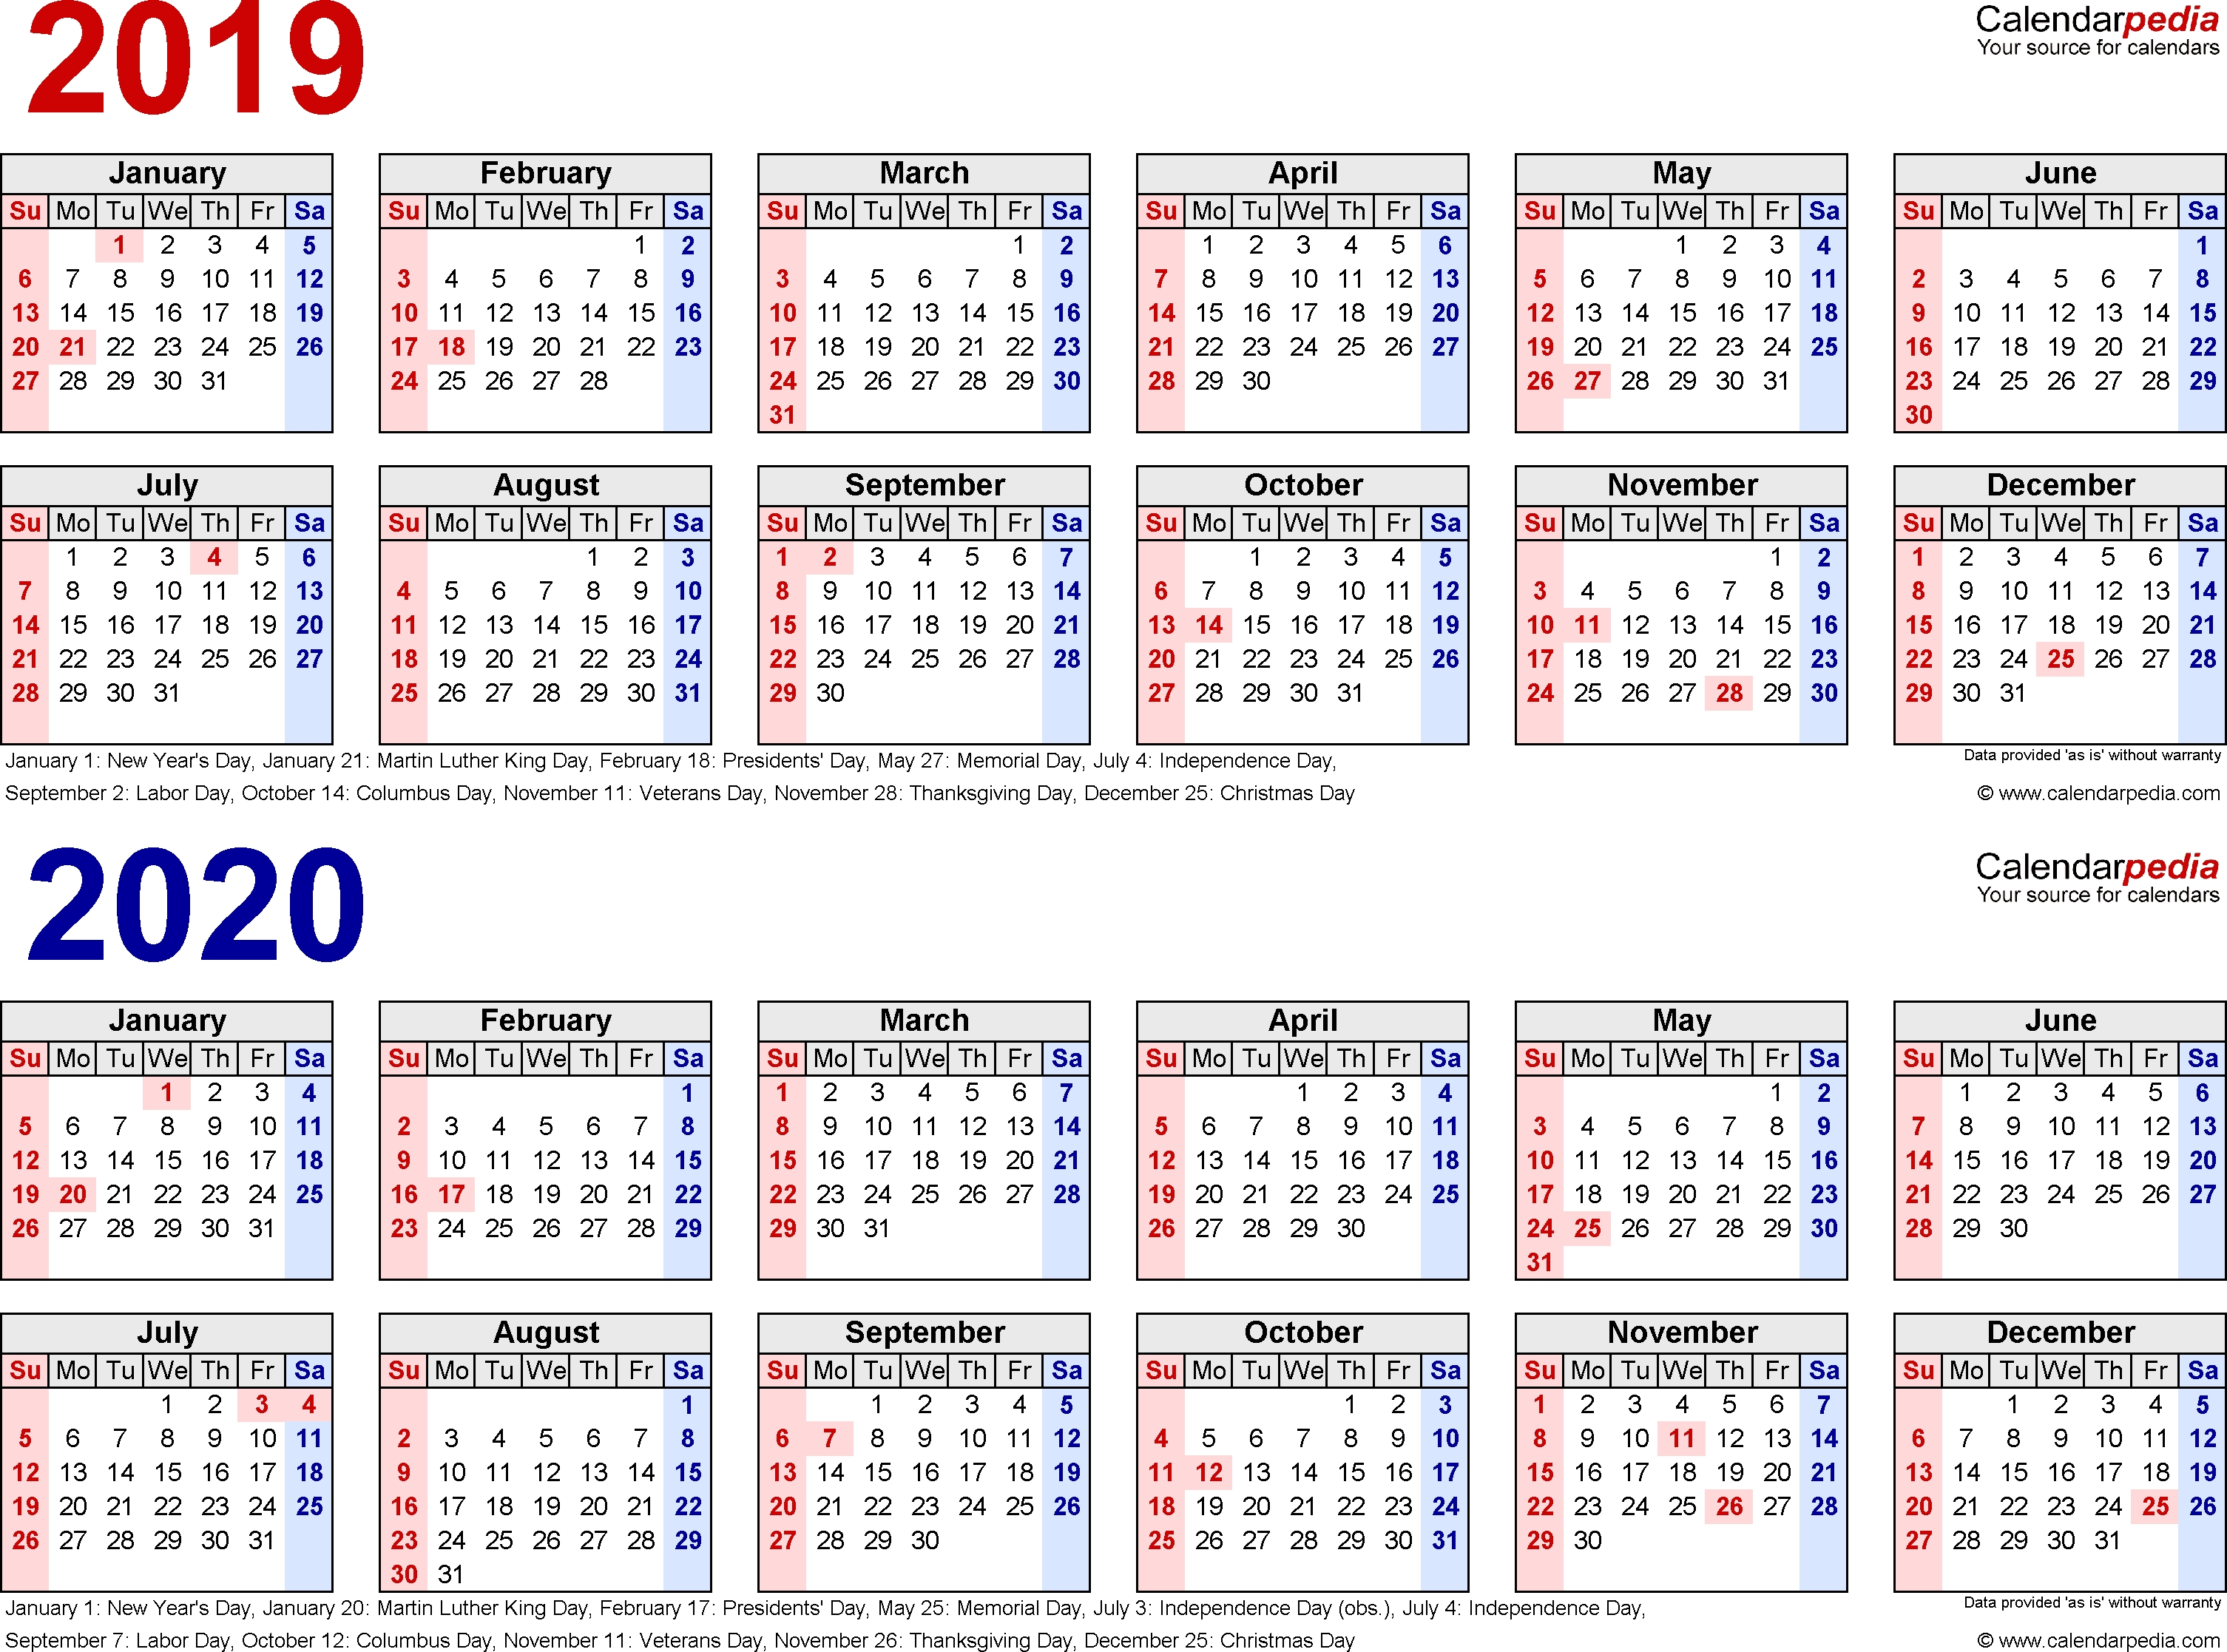 2019-2020 Calendar - Free Printable Two-Year Word Calendars throughout Macs 2019-2020 Calendar